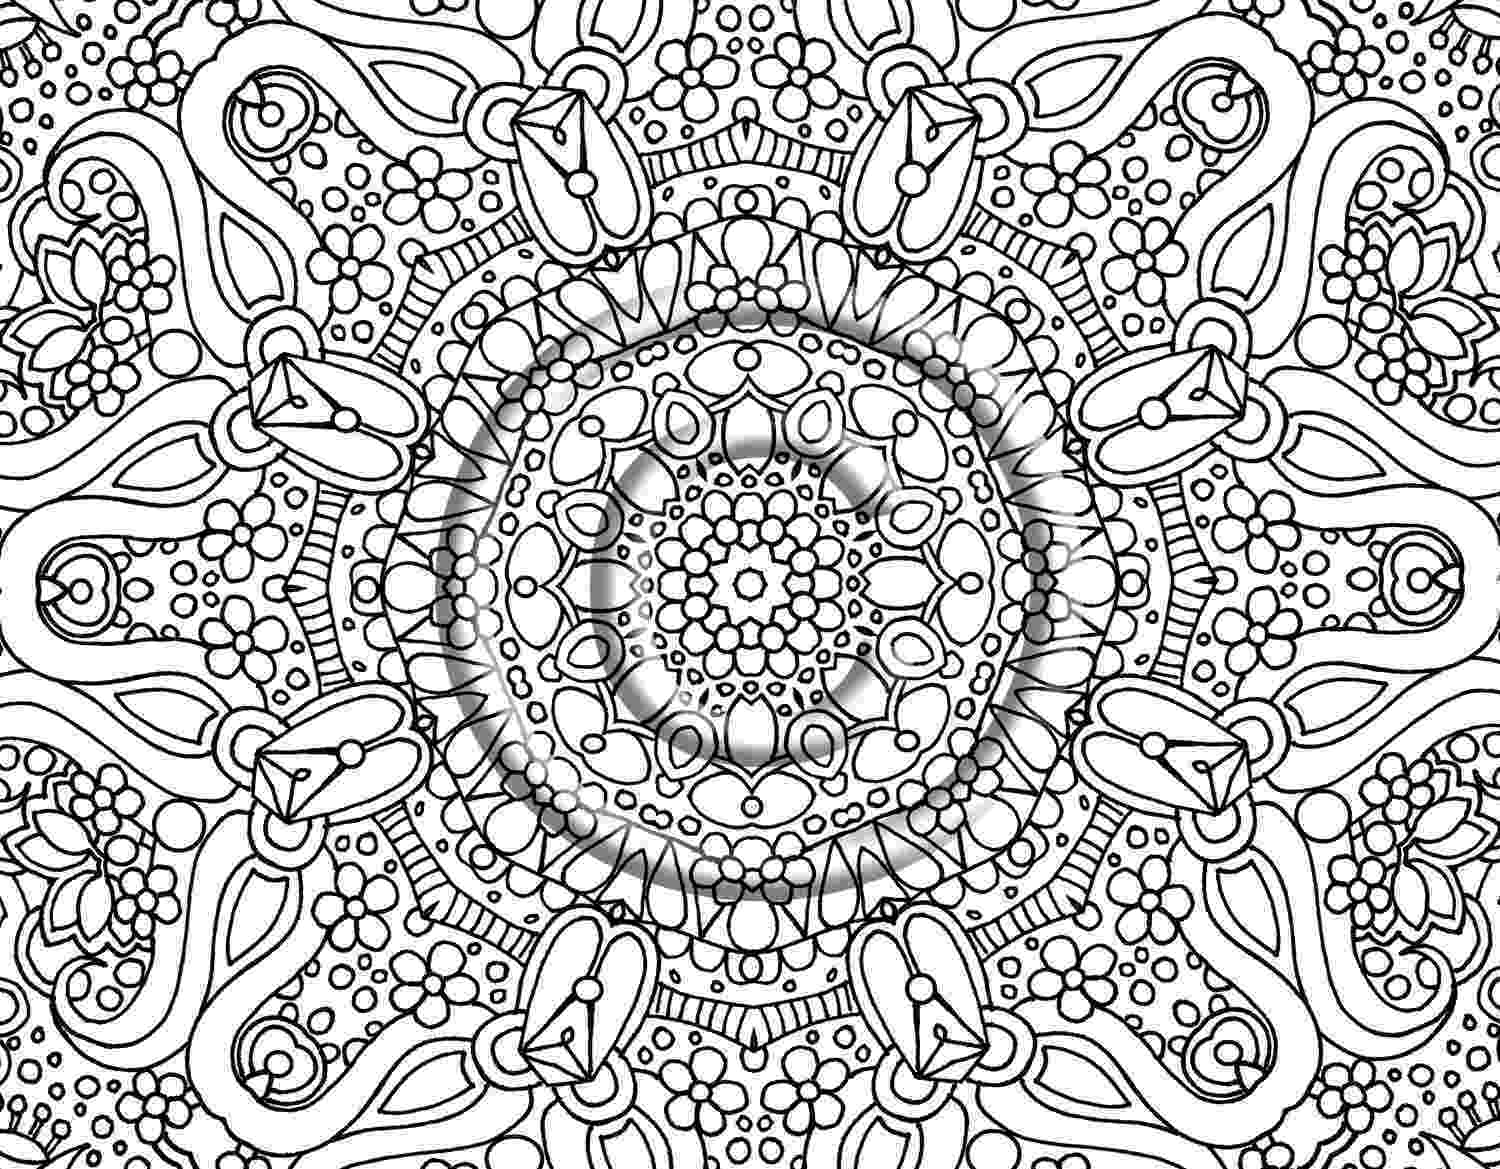 challenging coloring sheets difficult coloring pages for adults to download and print challenging coloring sheets